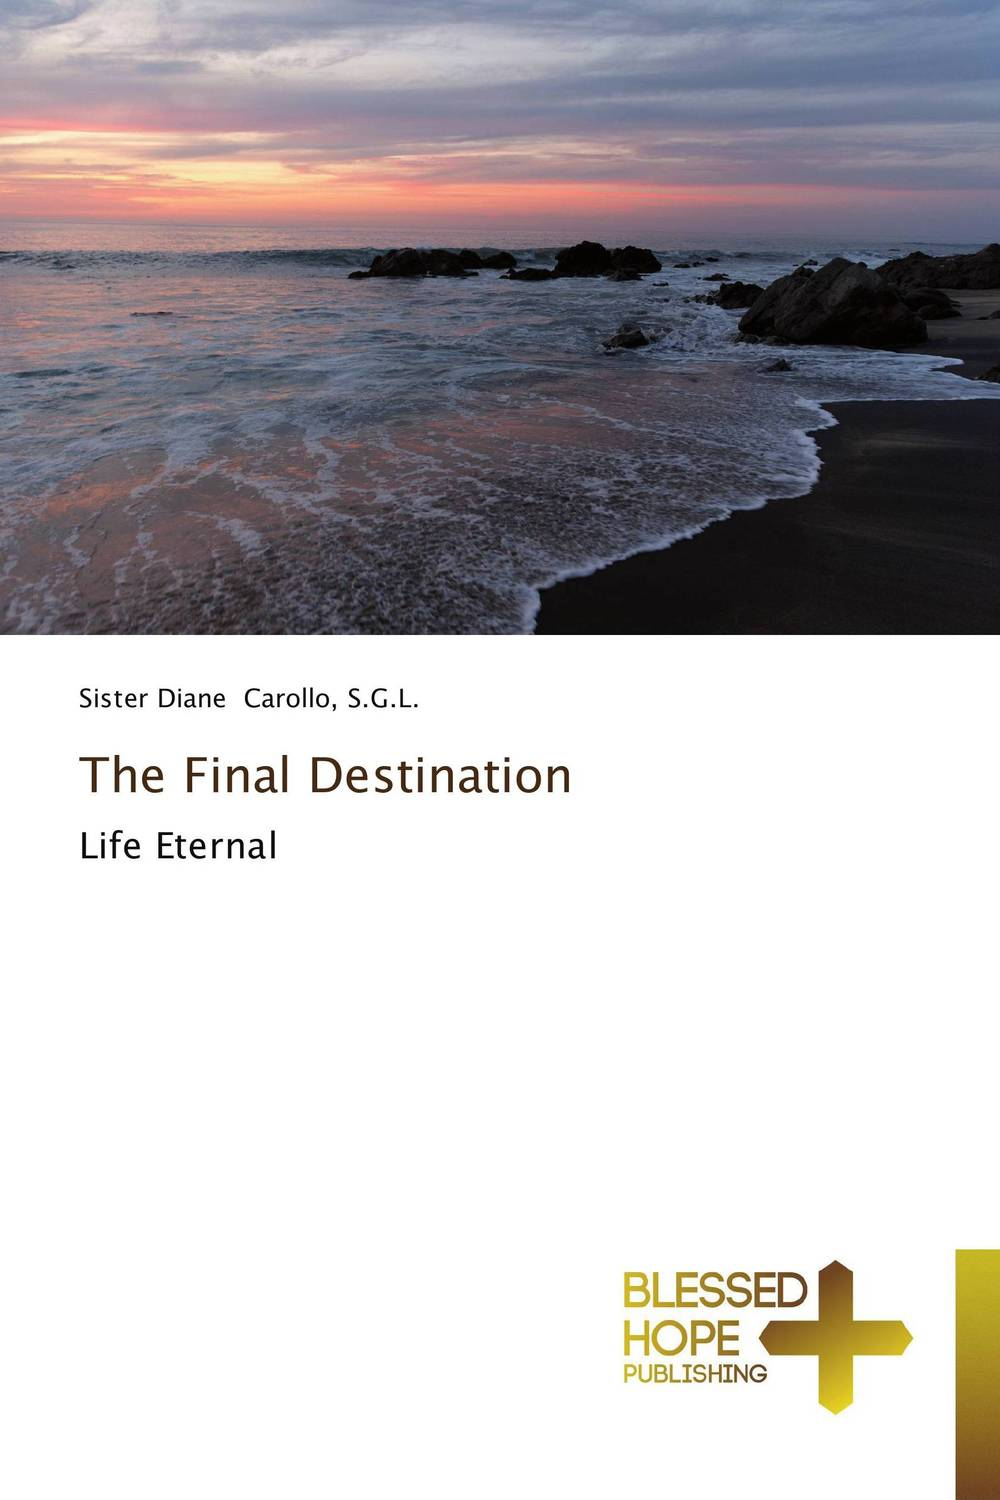 The Final Destination the reader